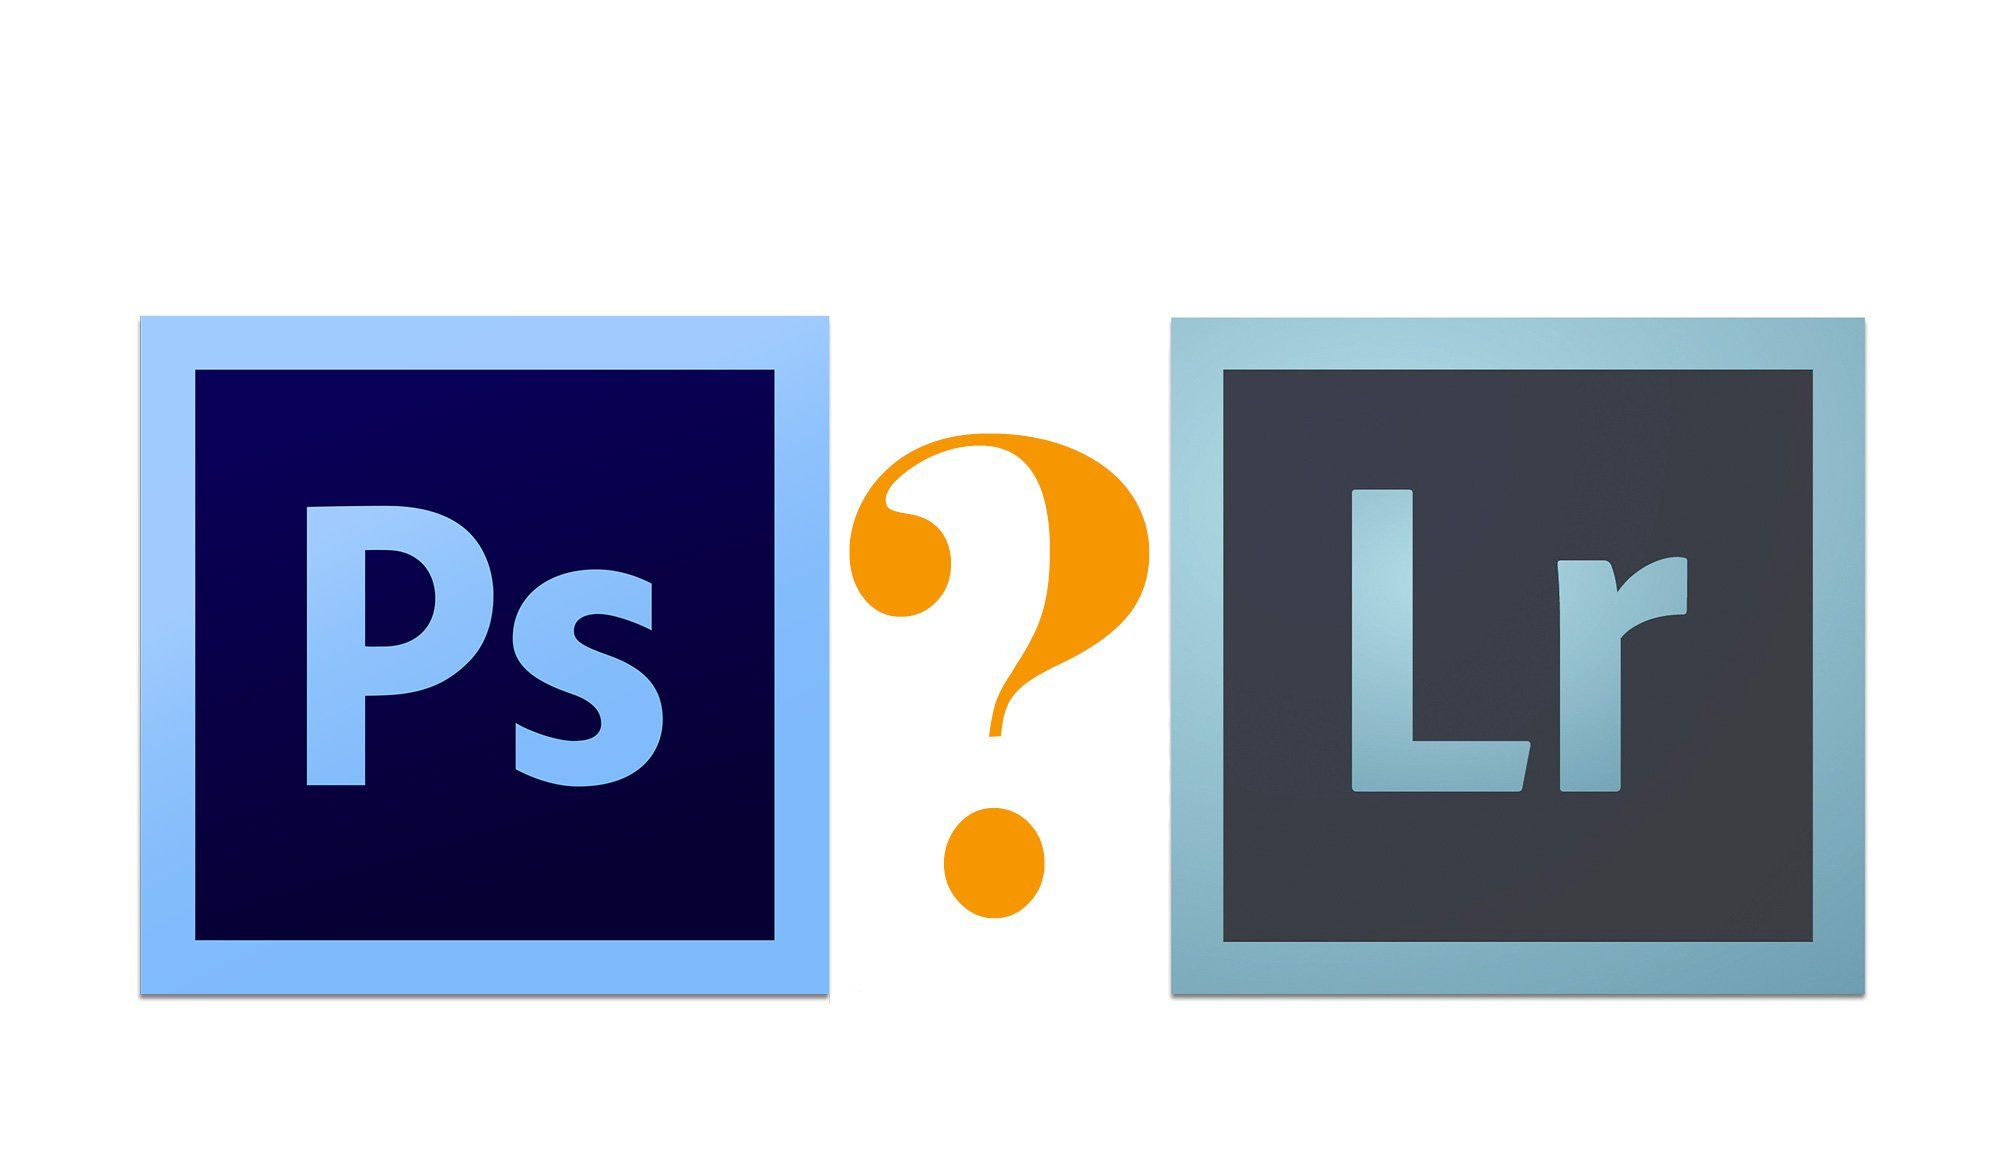 What are the differences between Adobe